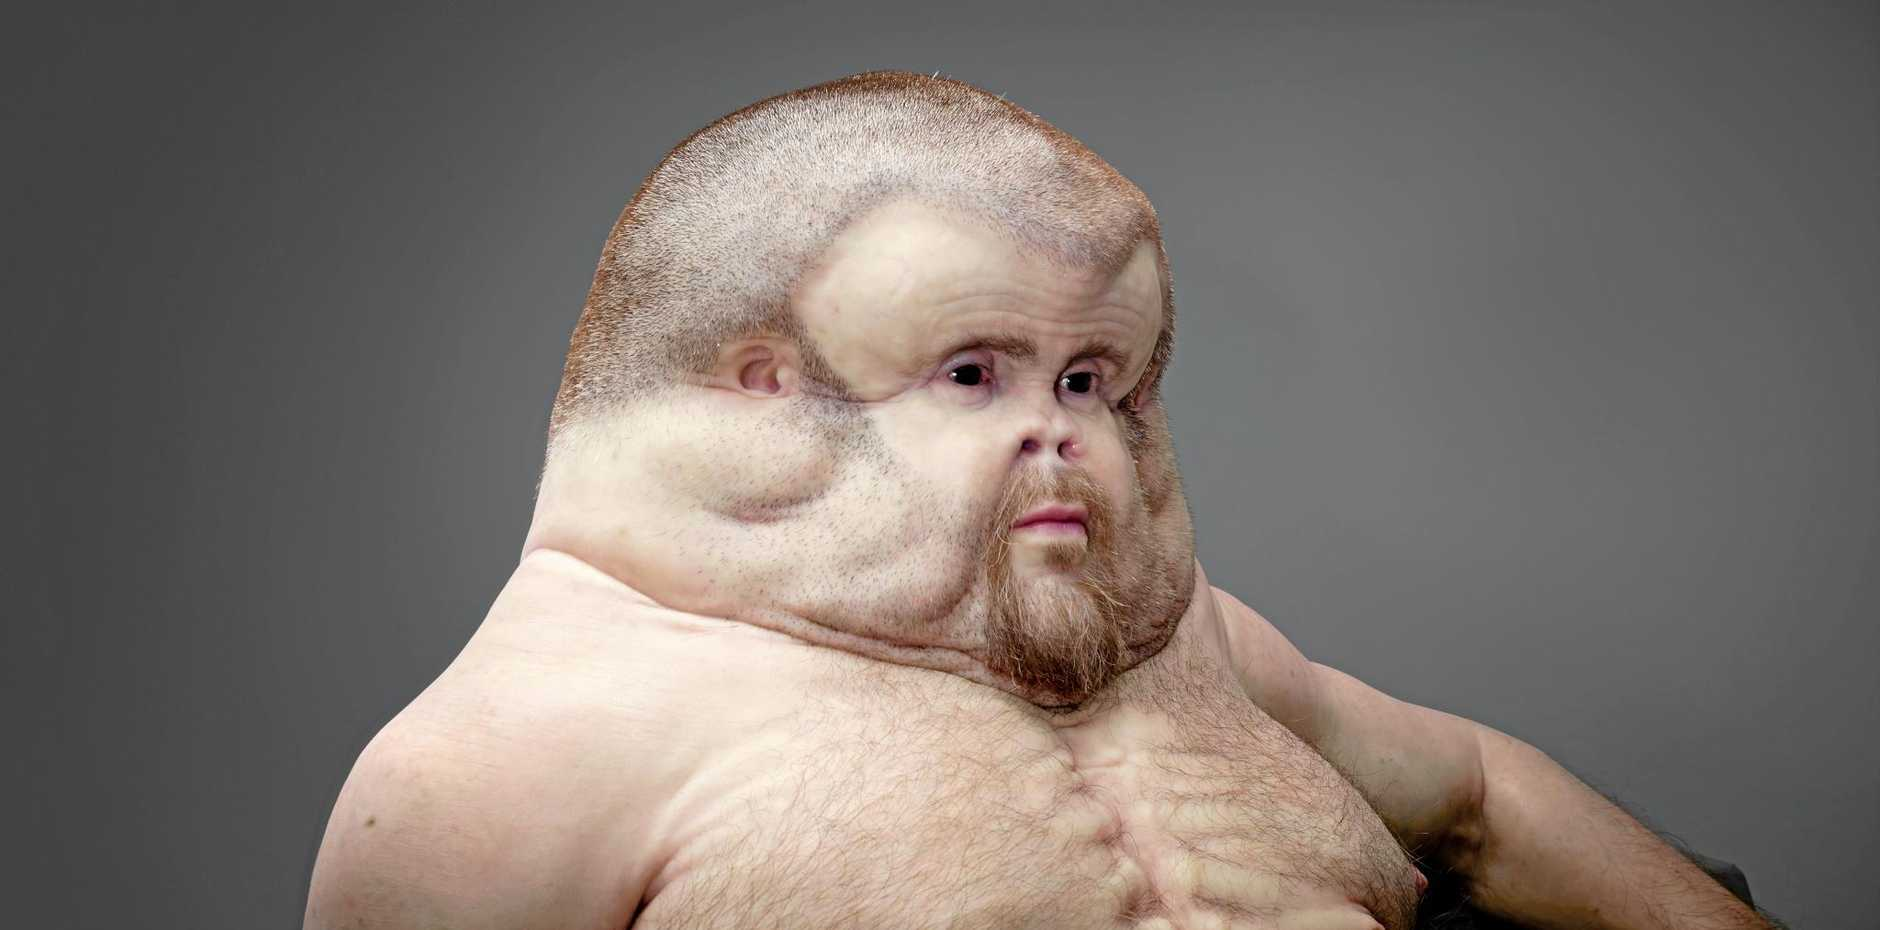 Nope, that isn't Jabba the Hutt...it's Graham, an example of what we'll look like if we evolve to survive car crashes.